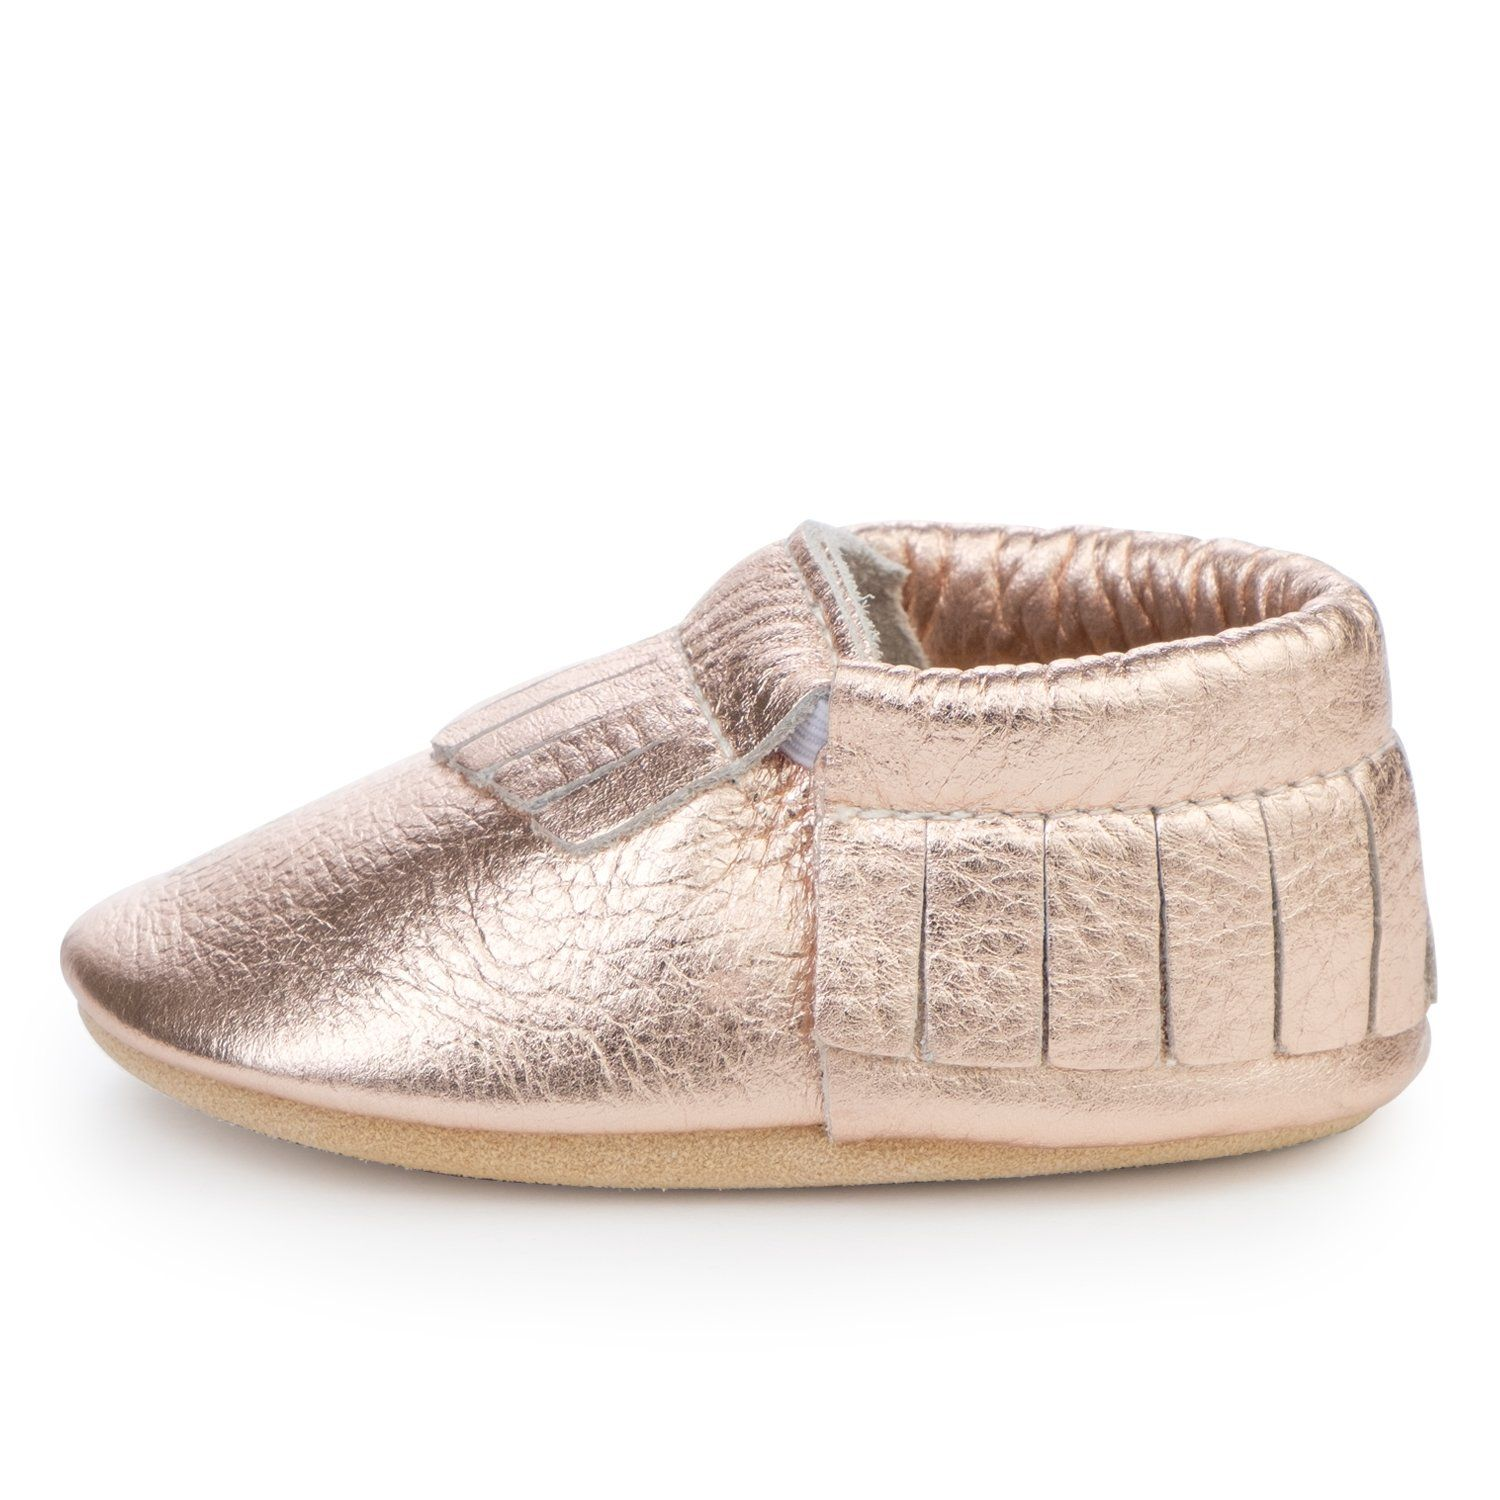 a3193b34fae17 BirdRock Baby - Rose Gold Baby Moccasins in 2019 | Products | Baby ...